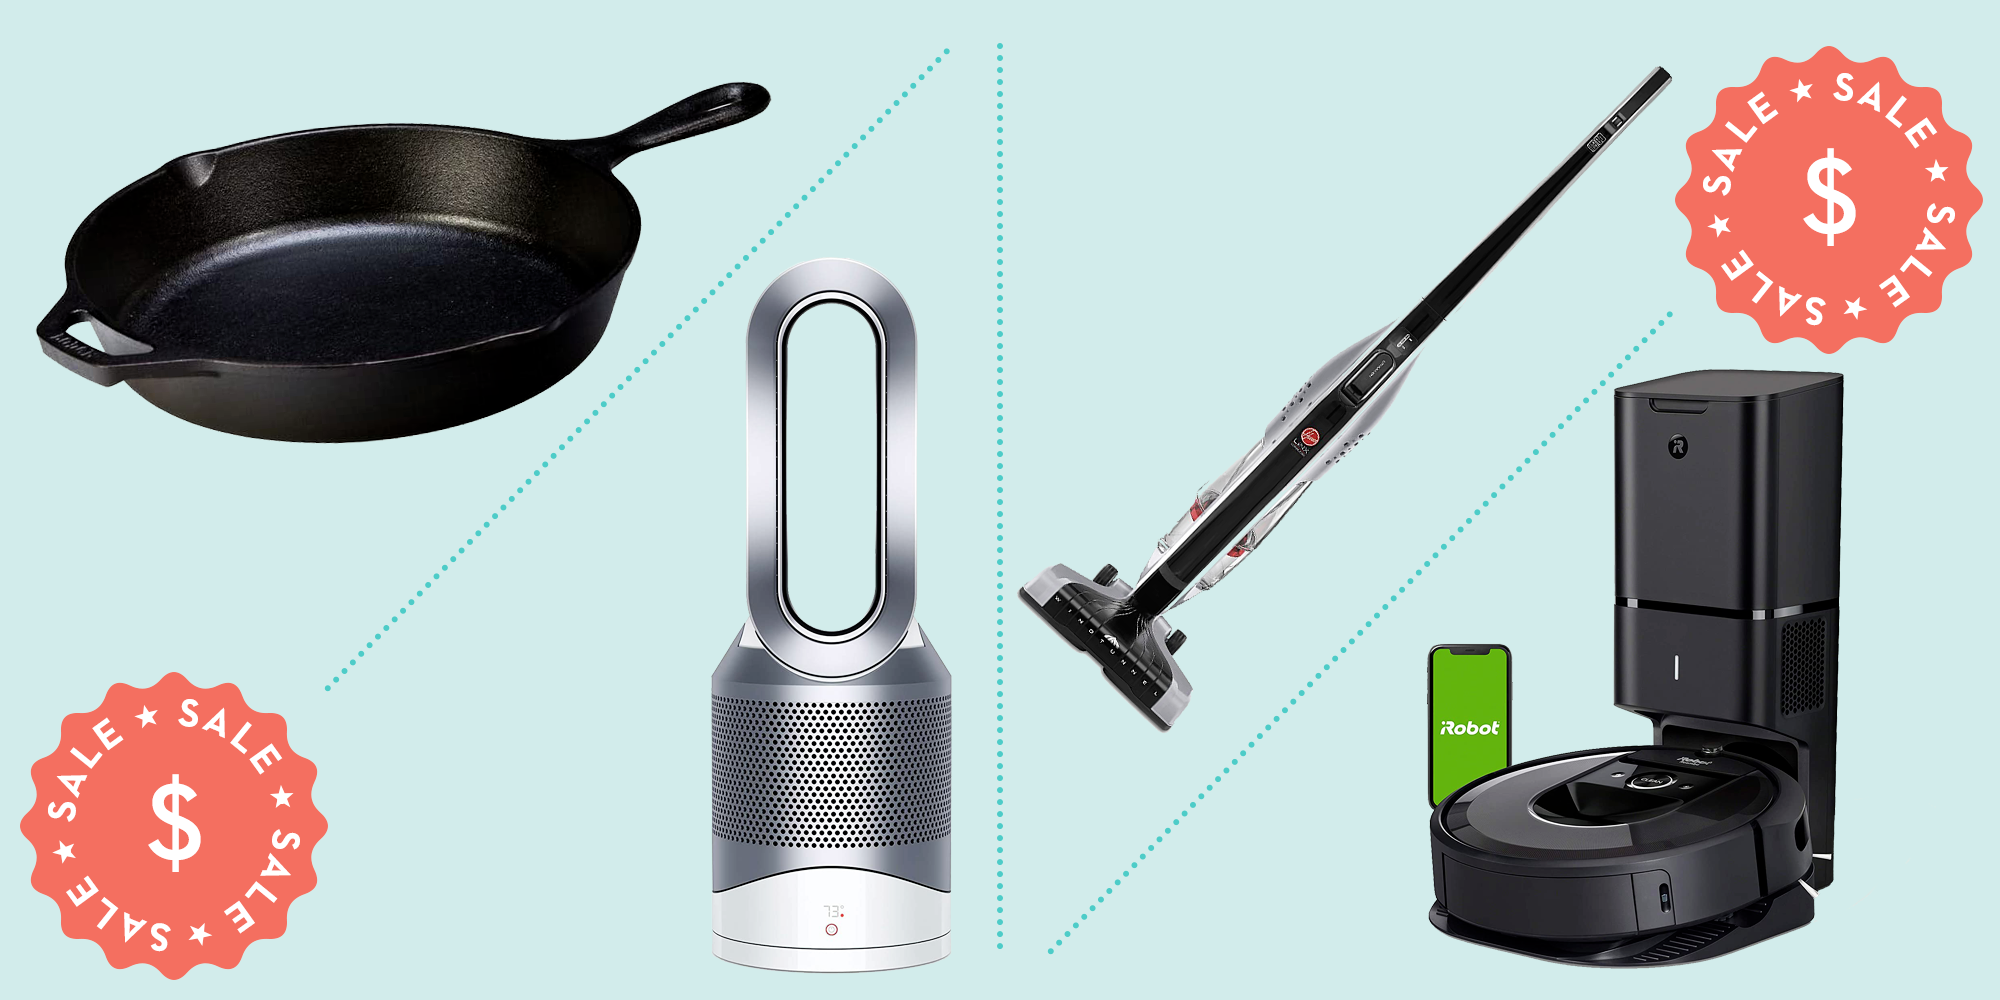 Best Amazon Prime Day Appliance Sales 2020 Deals On Kitchen And Home Items